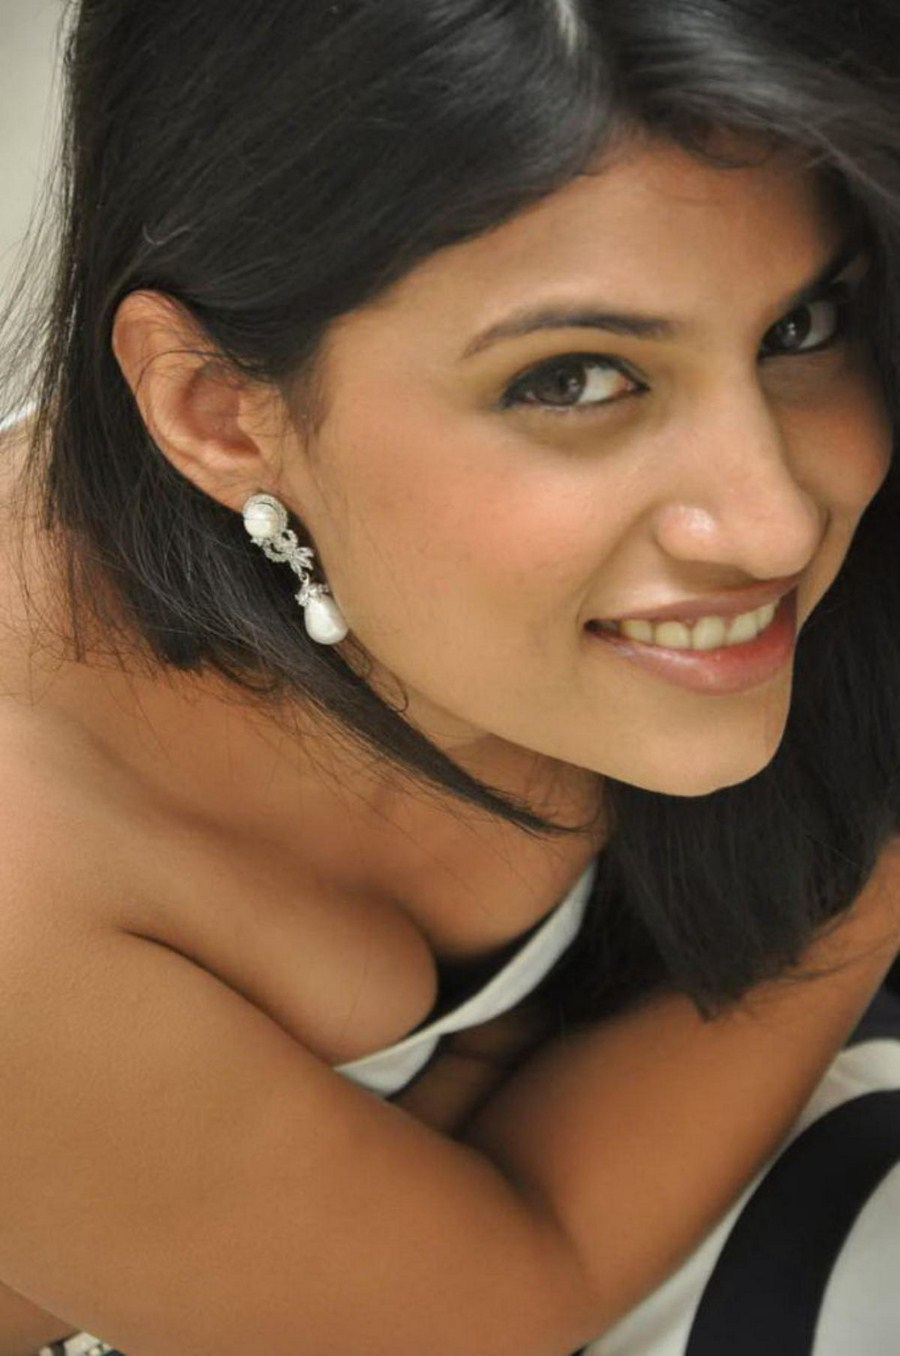 Tamil Pictures Bollywood Images Kamistad Celebrity Portal - Rainpow